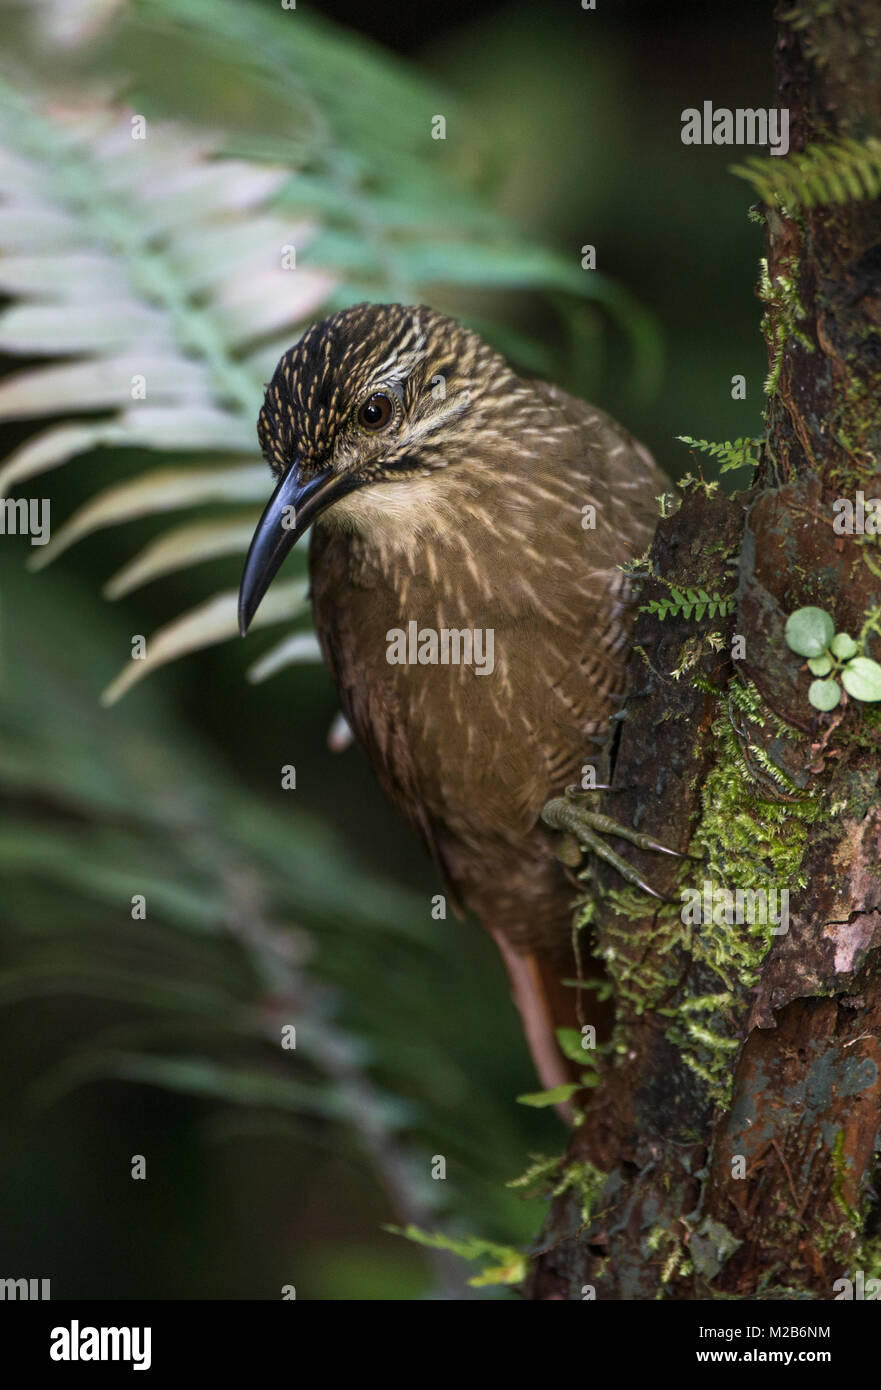 White-throated Woodcreeper (Xiphocolaptes albicollis) from the Atlantic Rainforest - Stock Image